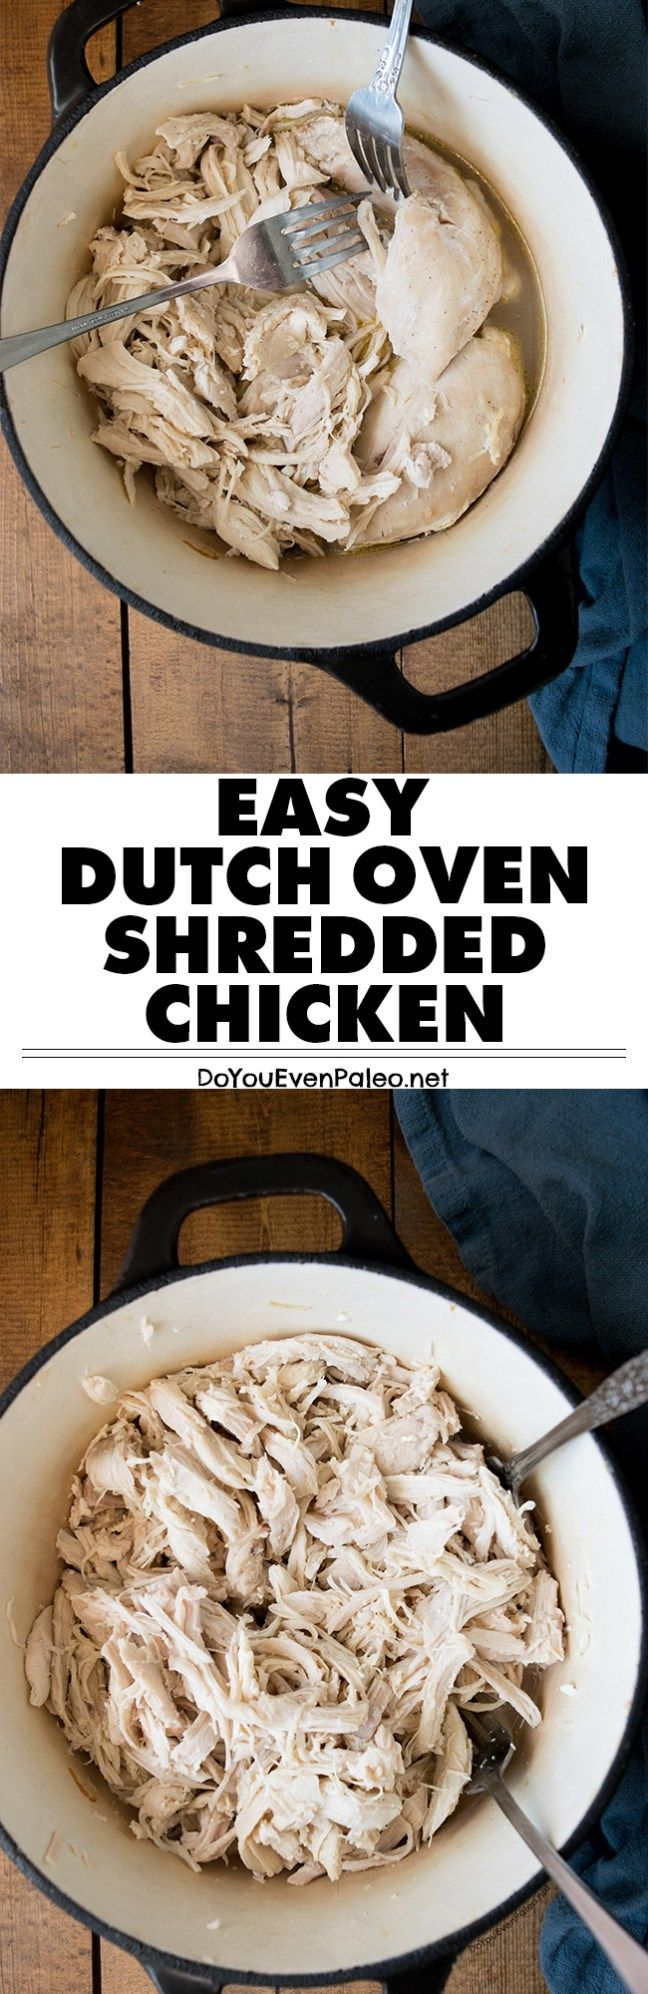 Need plain shredded chicken for a recipe? Make it quick with this plain dutch oven shredded chicken. Ready in about 30 minutes! Perfect for healthy recipes, paleo recipes, gluten free recipes, and meal prep! | DoYouEvenPaleo.net #paleo #glutenfree #doyouevenpaleo